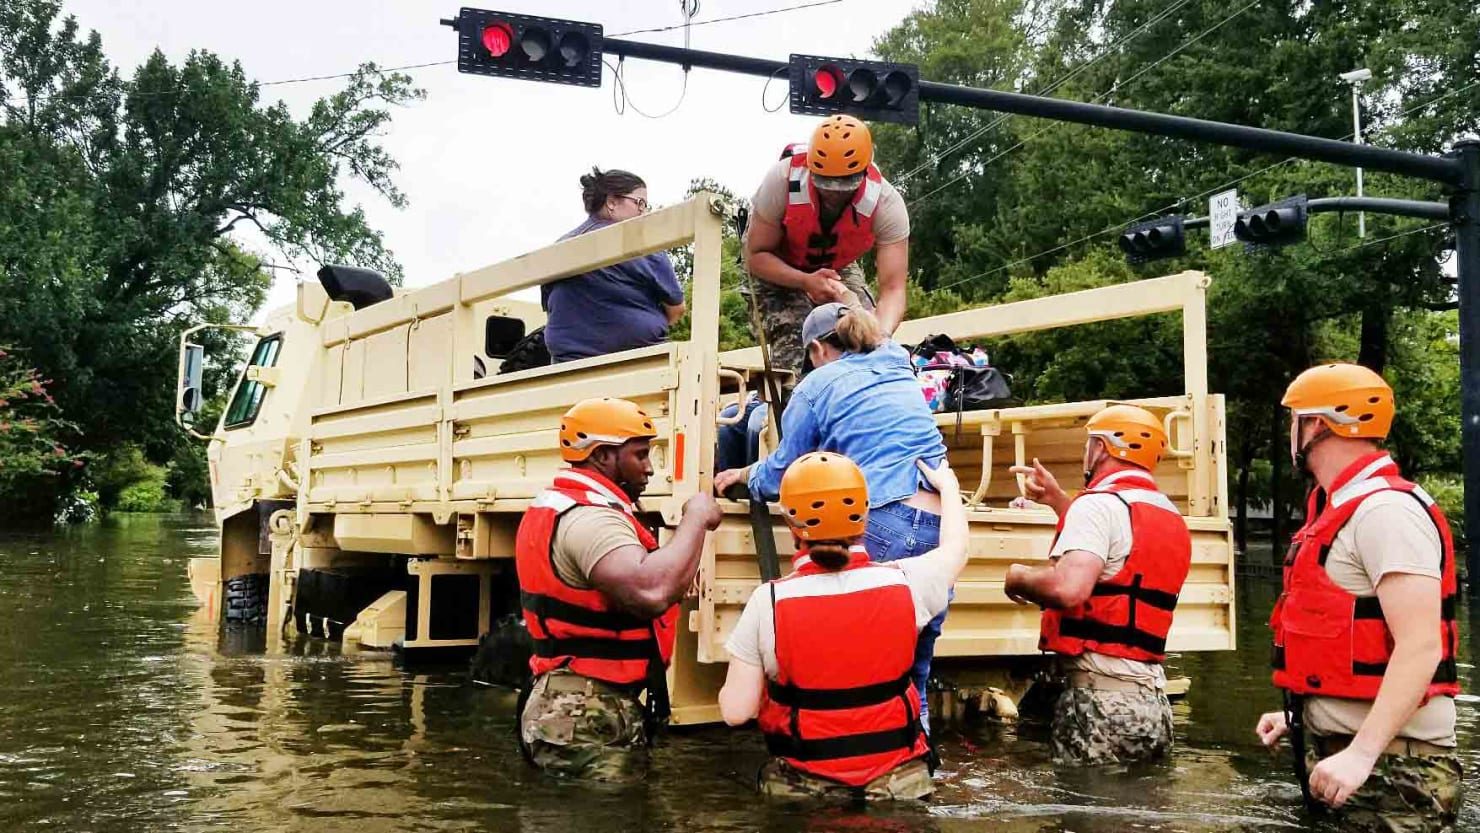 Texas military: Your drones are hindering emergency Harvey rescue operations https://t.co/188epG5Ozf https://t.co/S11U2bvfSi